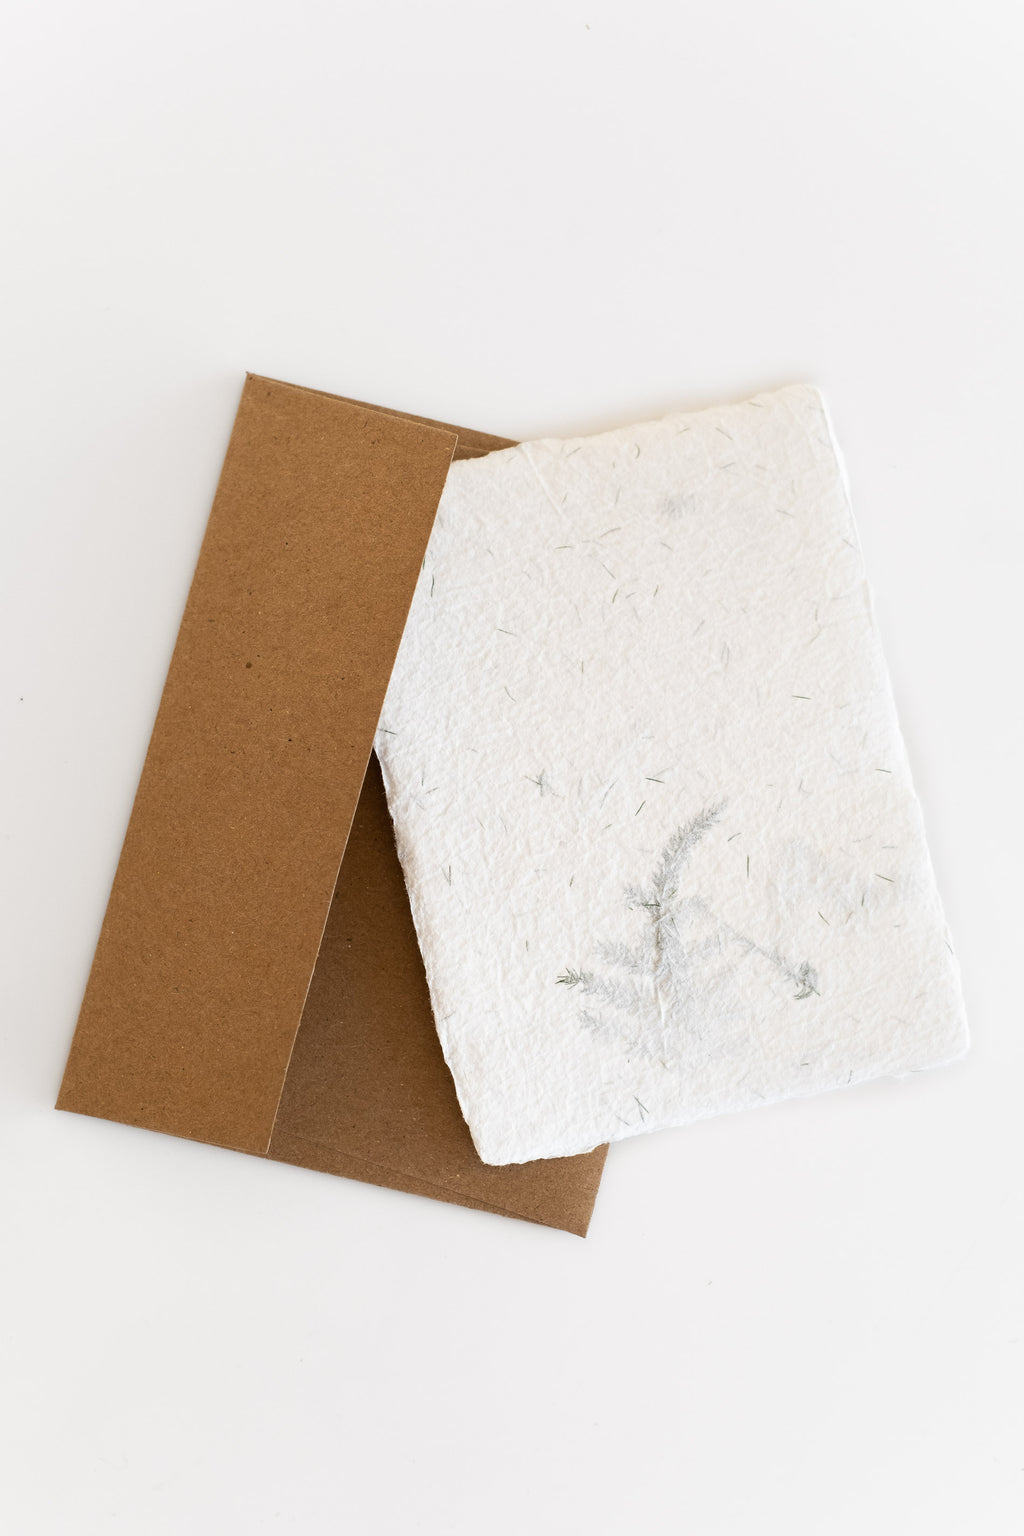 HANDMADE PAPER PACKS